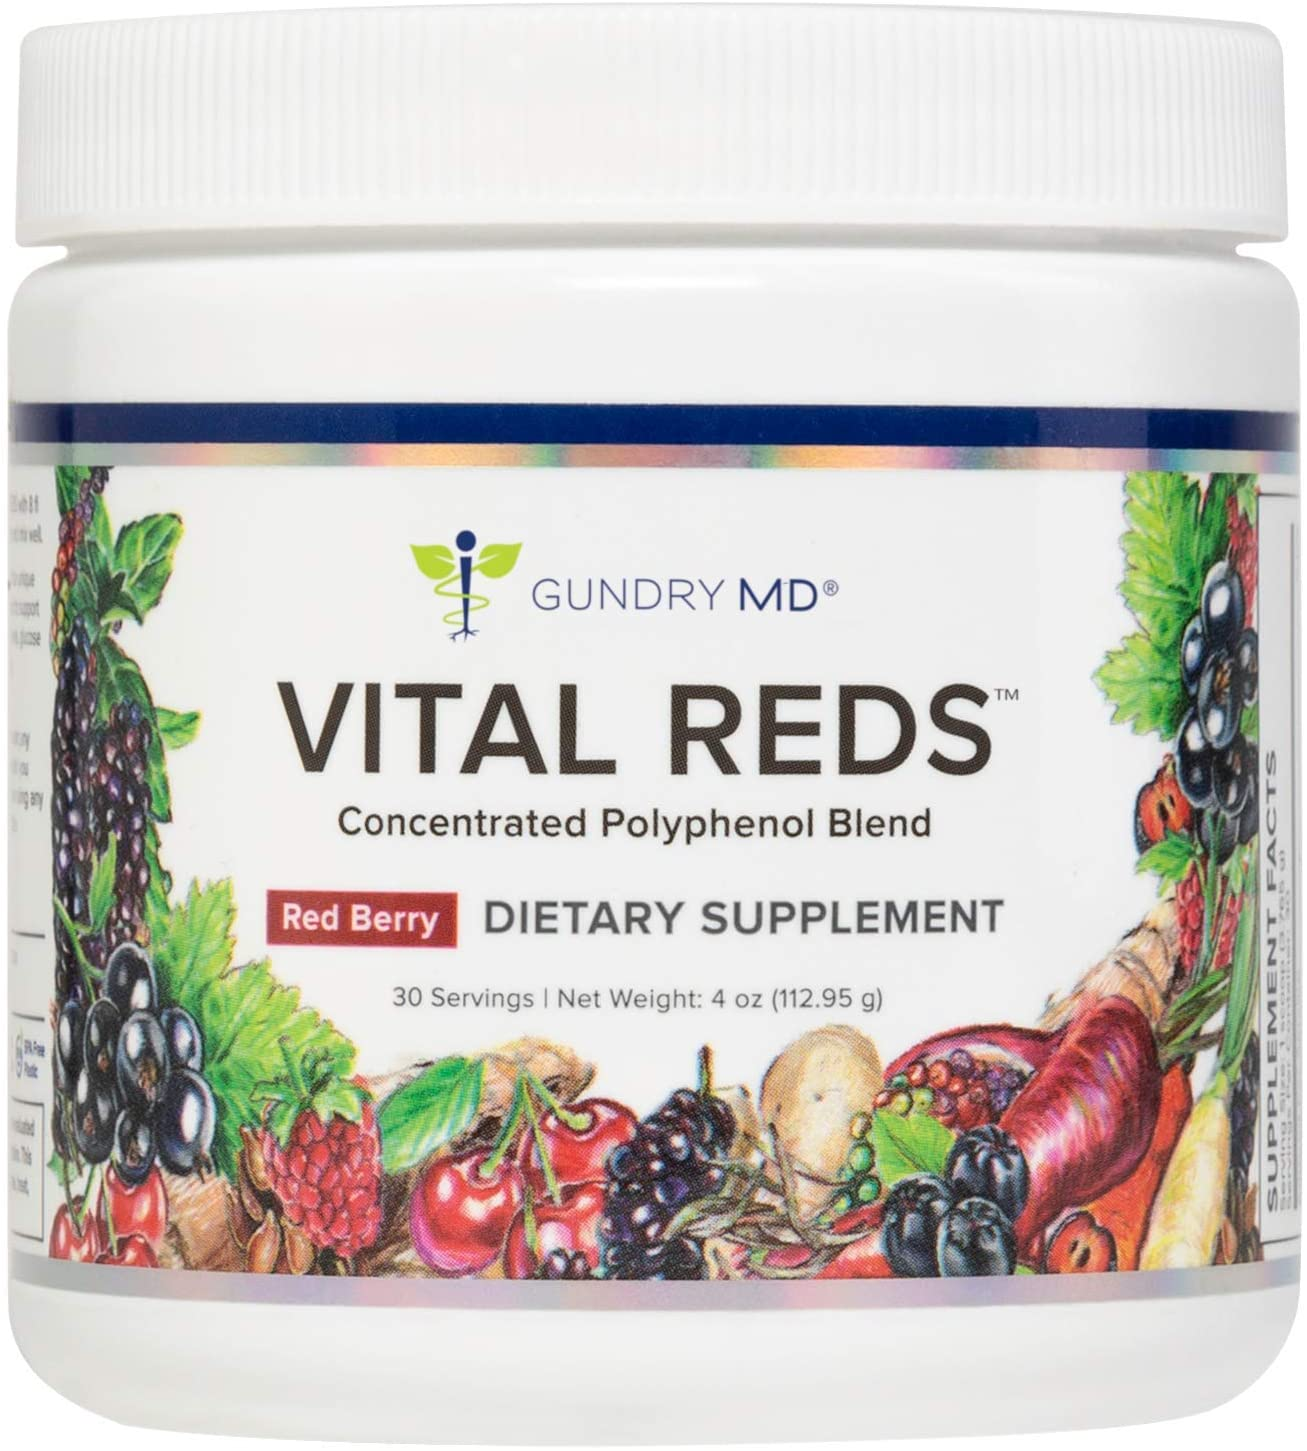 Gundry MD™ Vital Reds™ Concentrated Polyphenol Blend, 30 Servings